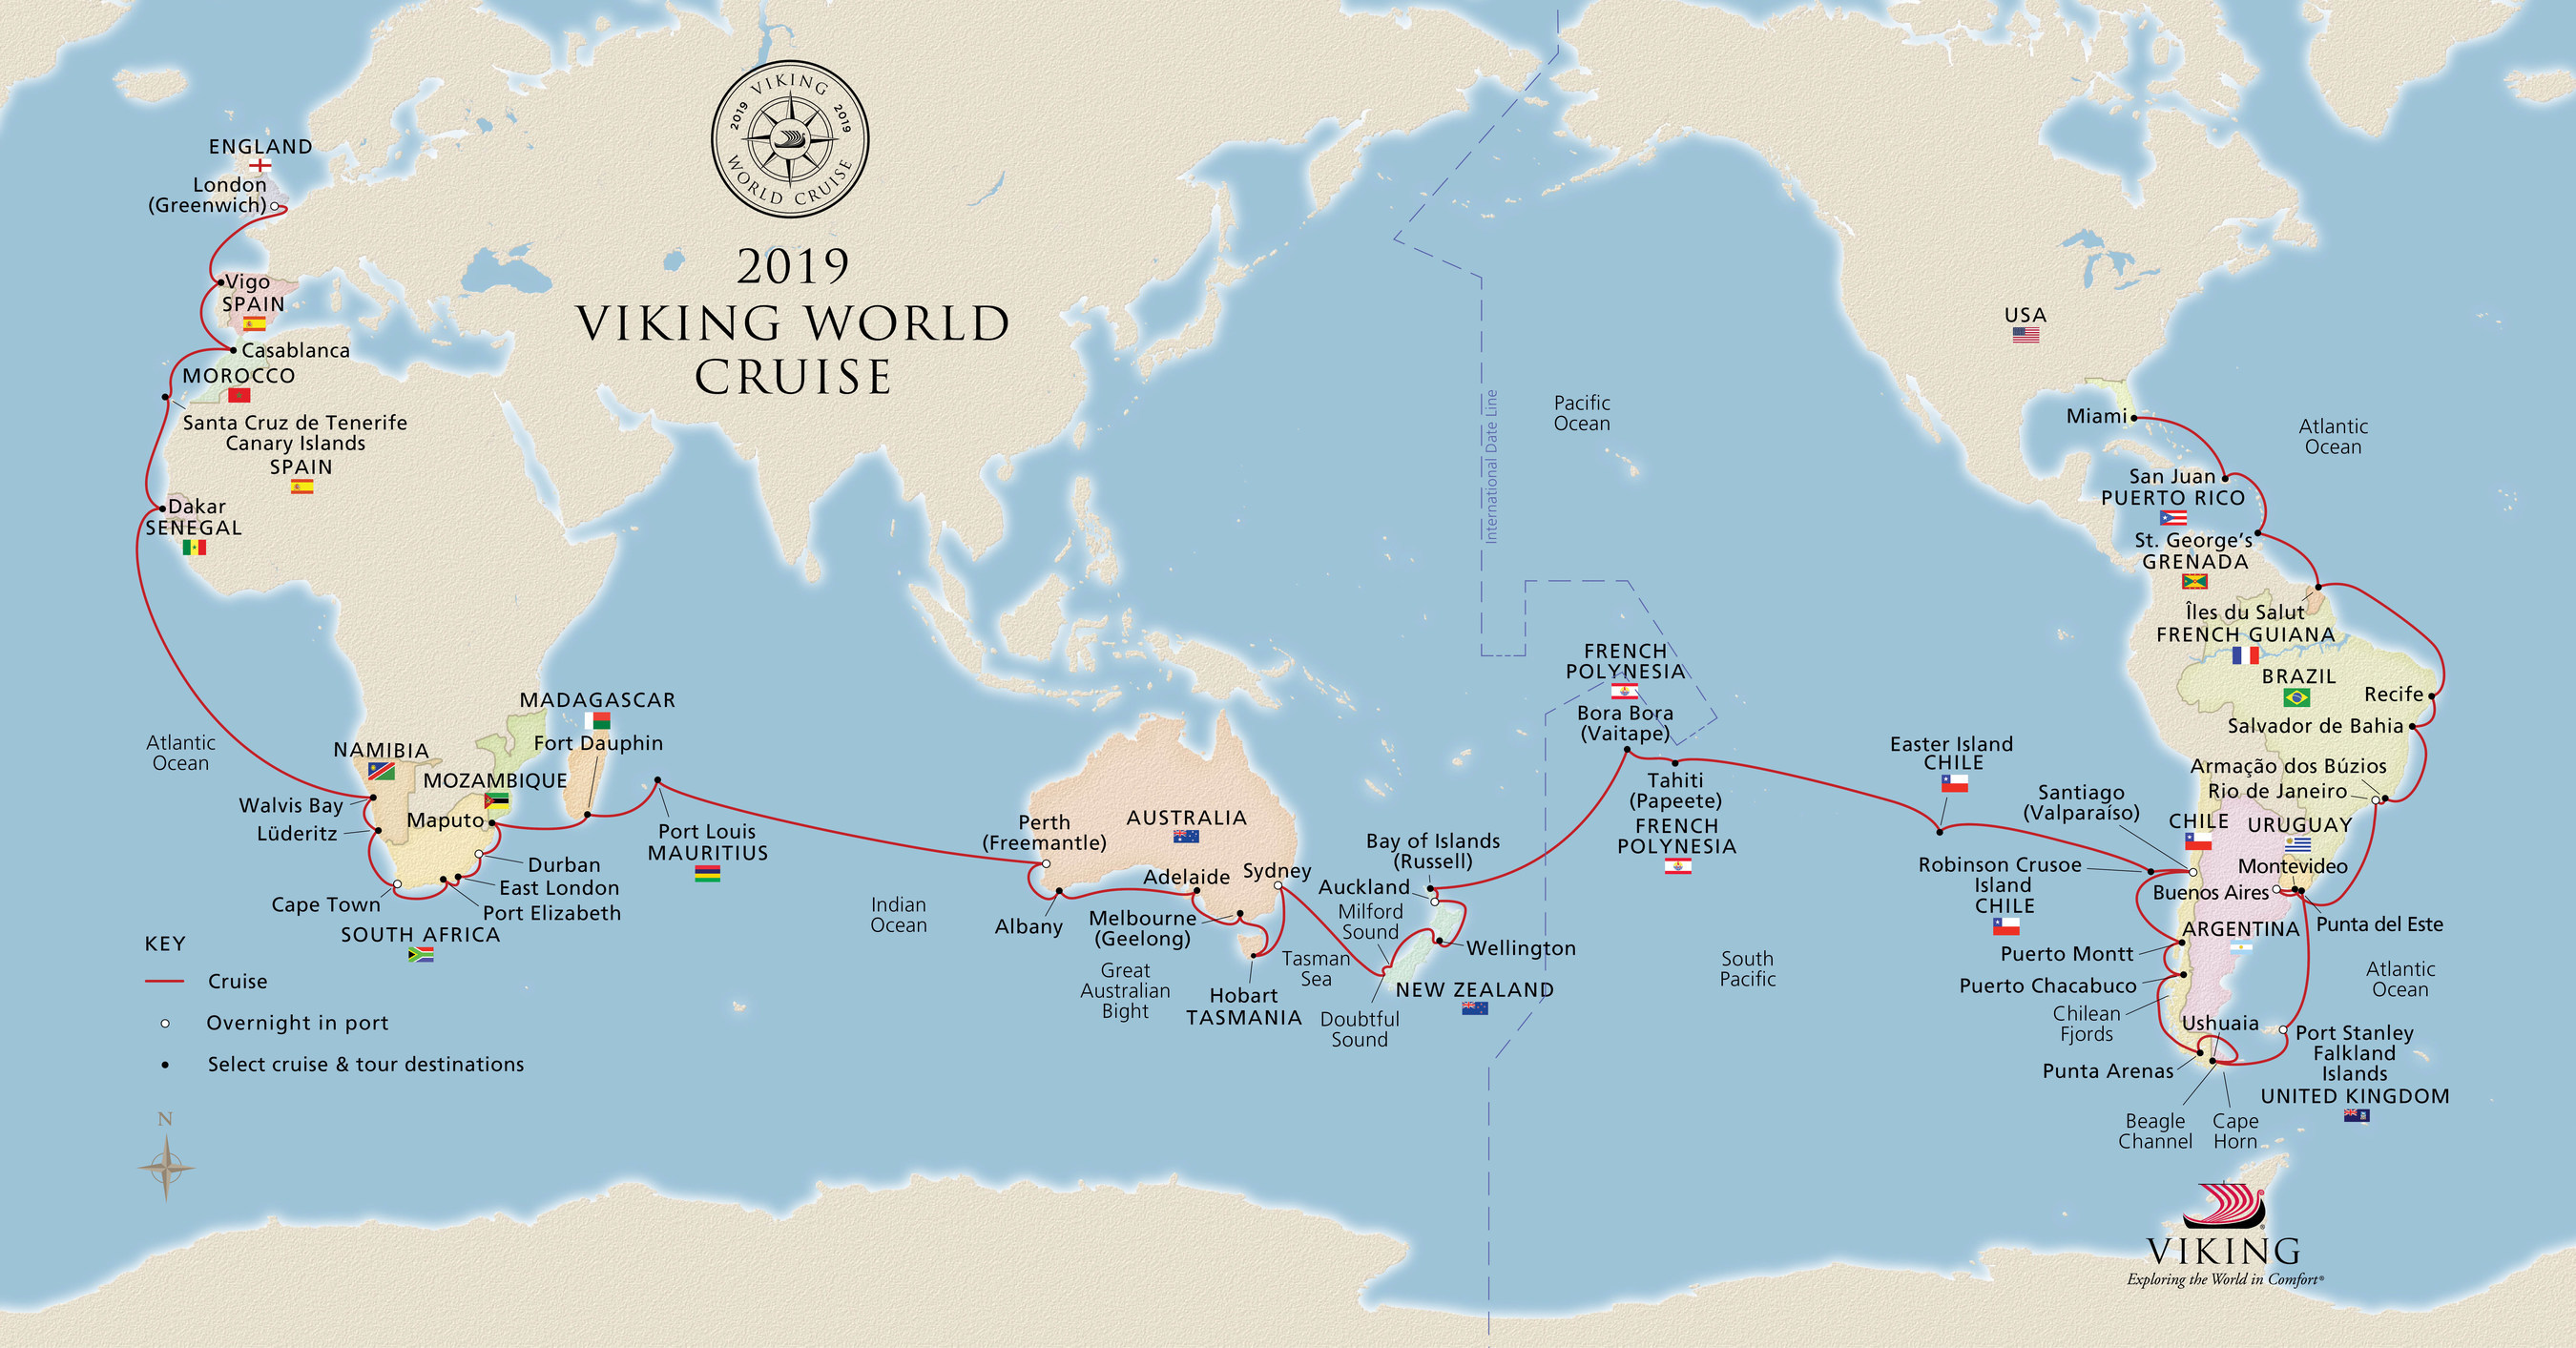 Ahead of its first-ever World Cruise scheduled for this winter, Viking Cruises announced Viking Sun will continue to sail the globe on its second World Cruise, departing January 2019. Aboard the soon-to-be delivered fourth vessel in Viking's award-winning ocean fleet, the new itinerary will span 128-days, five continents, 21 countries and 44 ports, with 10 port overnights. For more information visit www.vikingcruises.com.